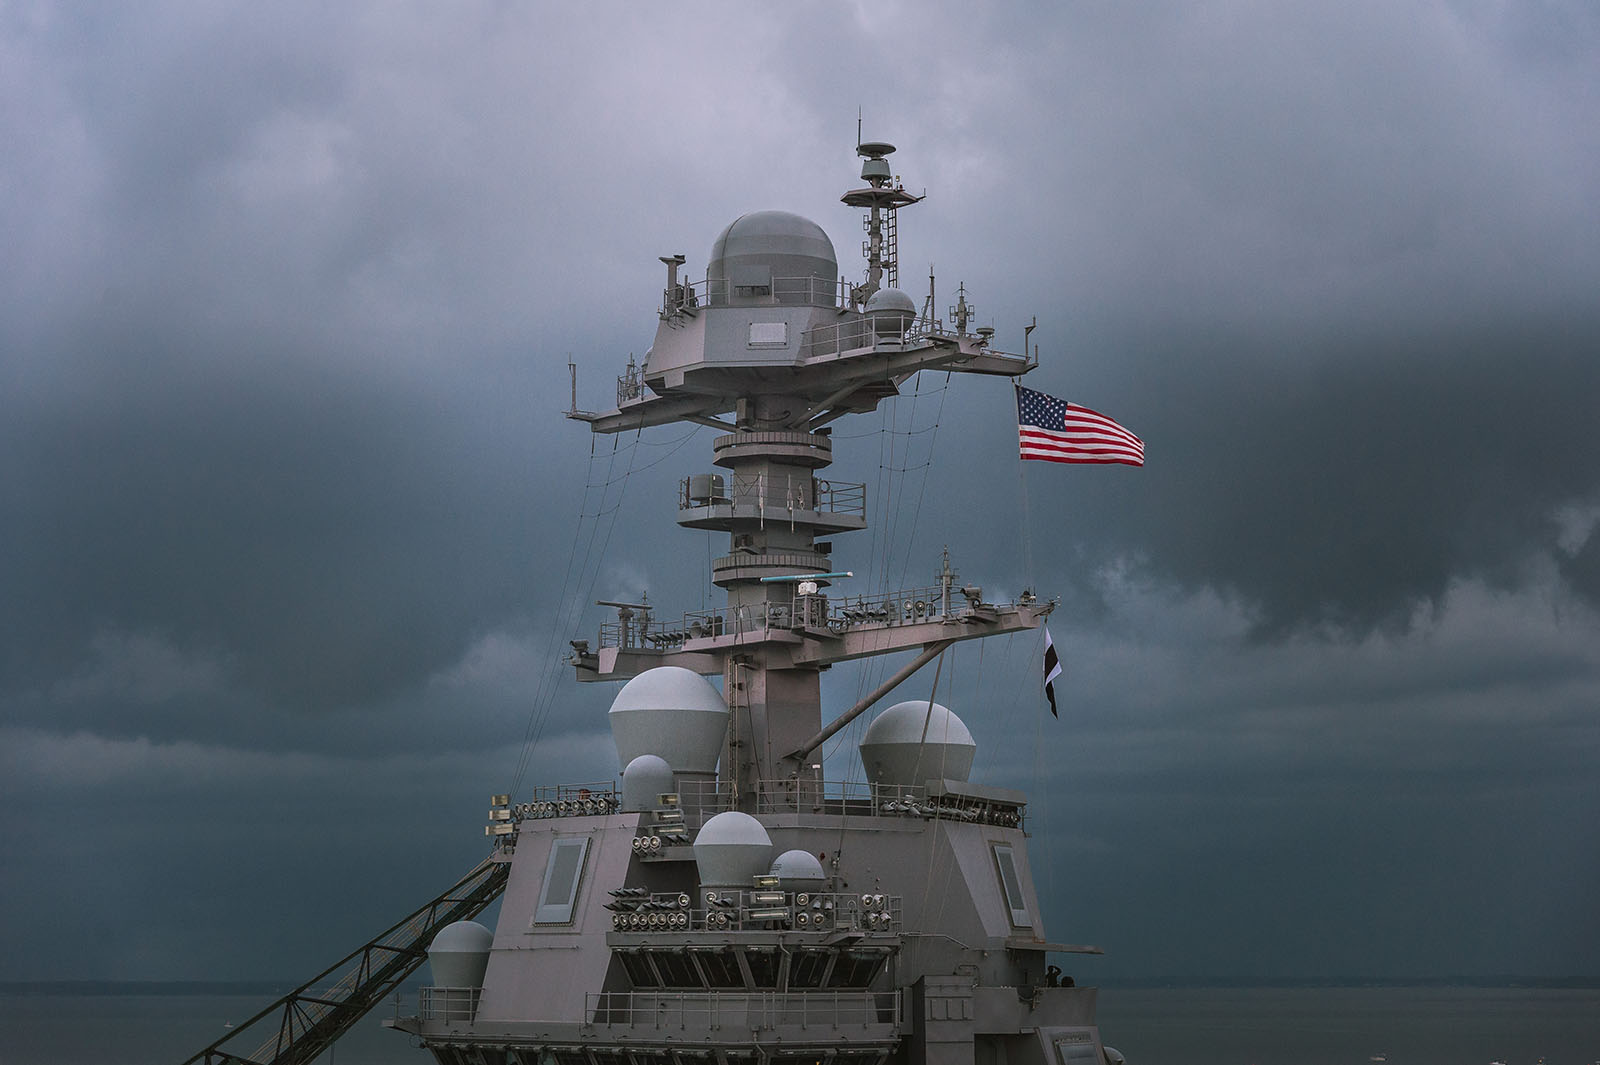 The U.S. flag flies atop the mast of a Ford-class aircraft carrier at Newport News Shipbuilding.